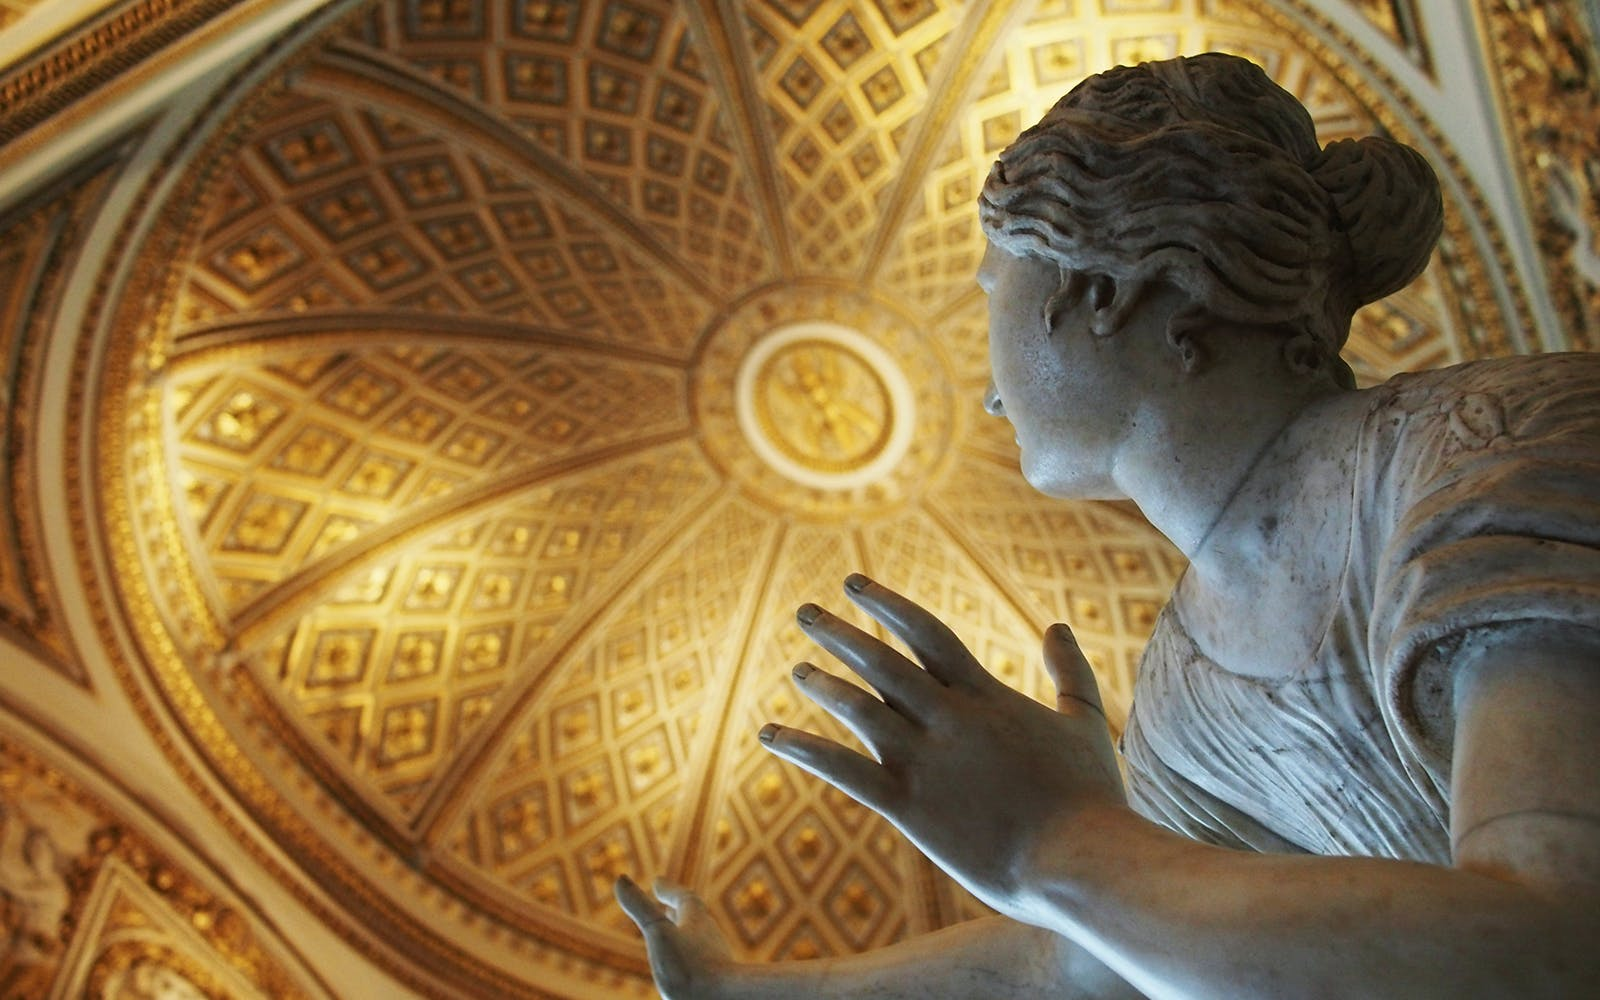 Skip The Line - Uffizi and Accademia Galleries with Audio Guide